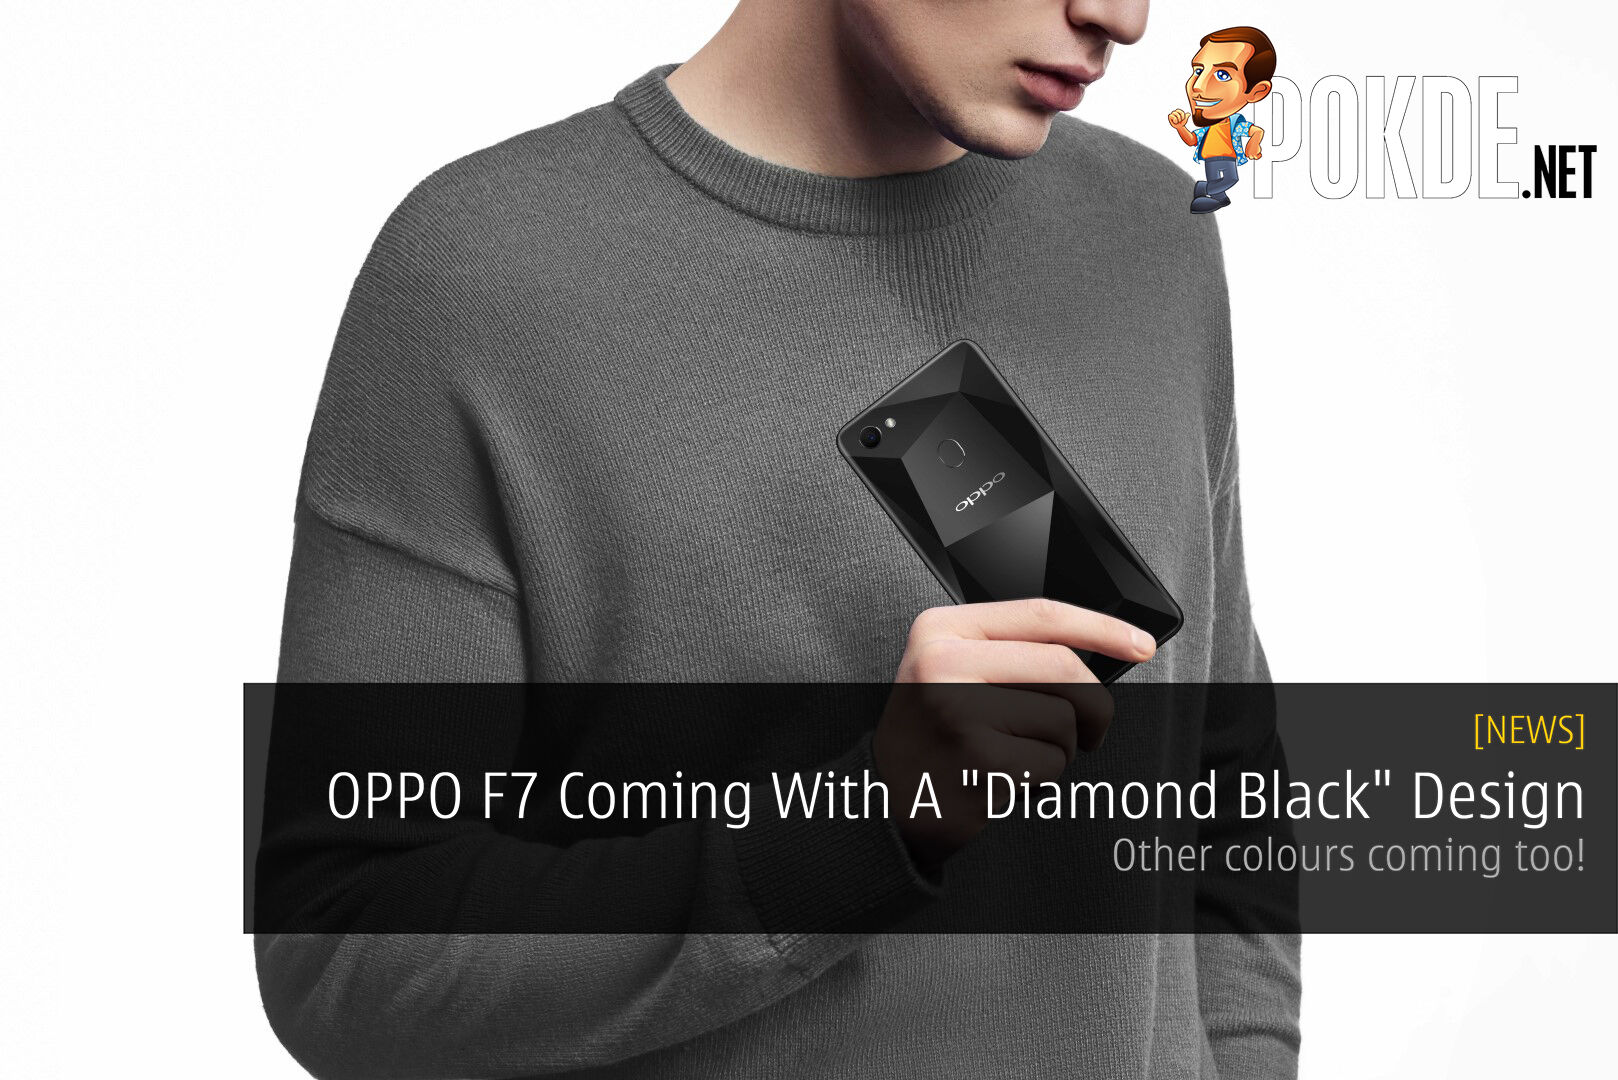 Both OPPO F5 and OPPO A83 Get Price Cuts - Nearly 200 bucks off 25